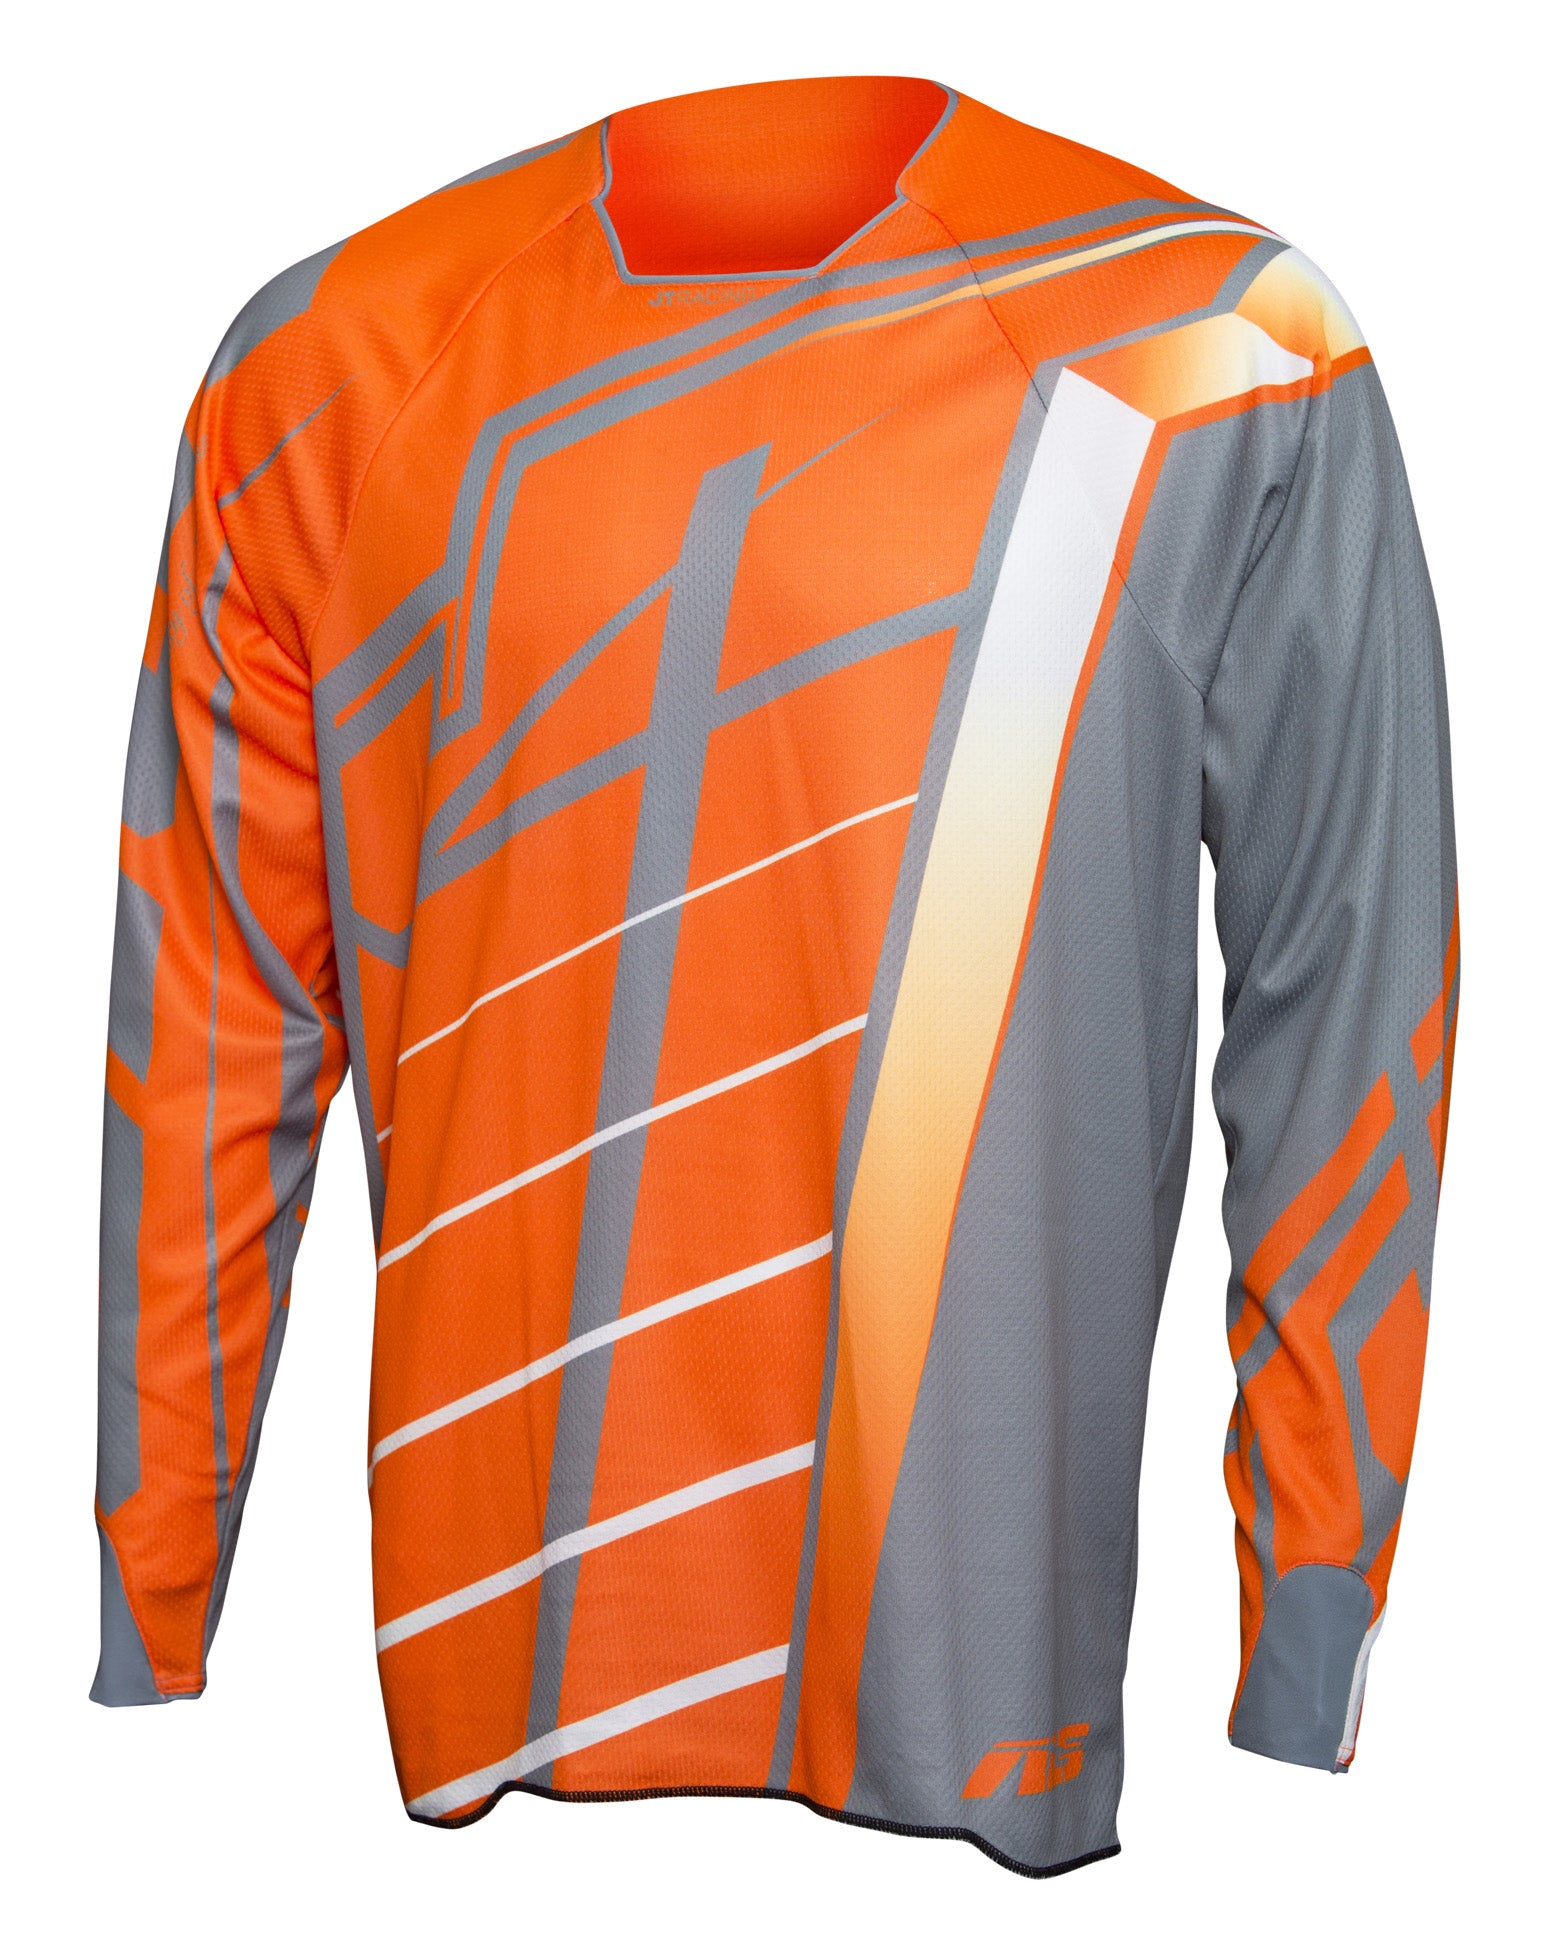 JT Racing USA-2017 Hyperlite Breaker Jersey, Fluro Orange/Grey